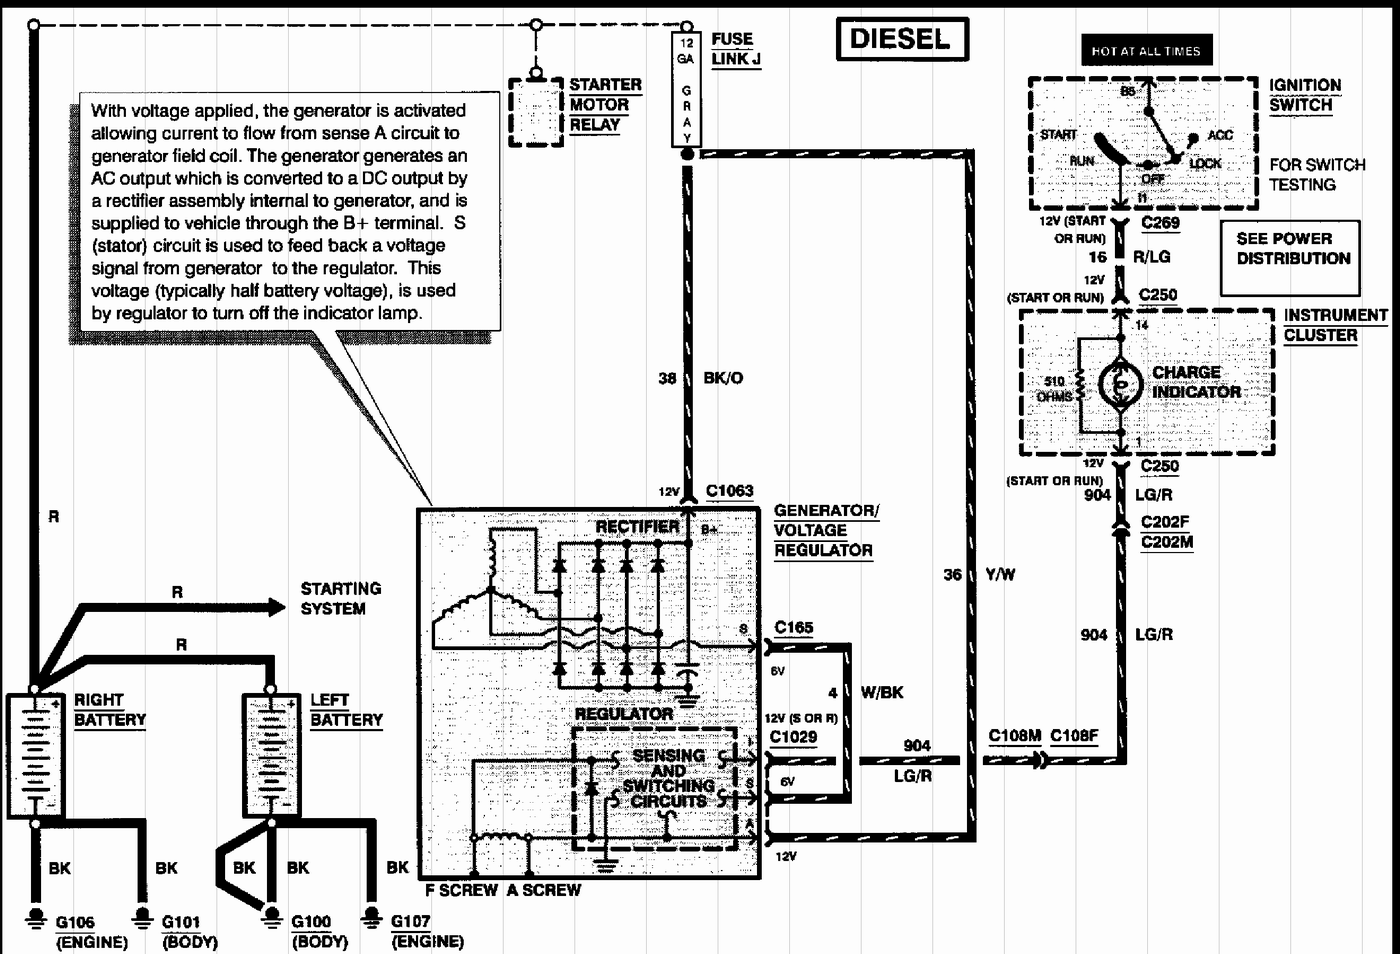 I need a wiring diagram for a 97 F350 7.3 Powerstroke with E4OD ... |  Powerstroke, Ford f250 diesel, F350Pinterest